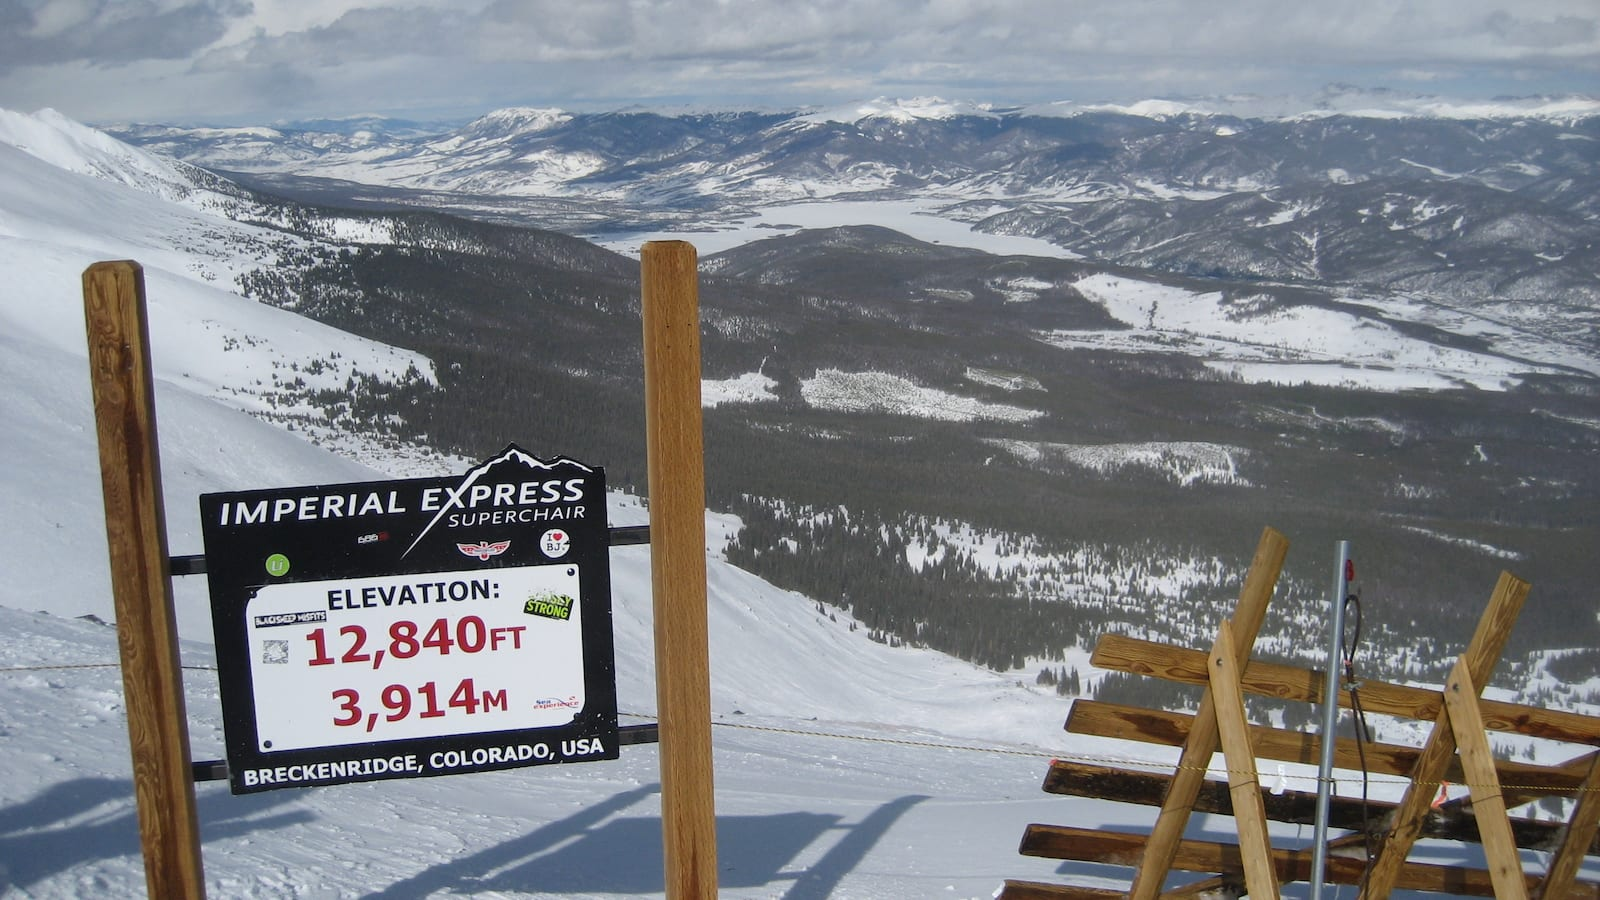 Breckenridge Ski Resort Atop the Imperial Express Superchair